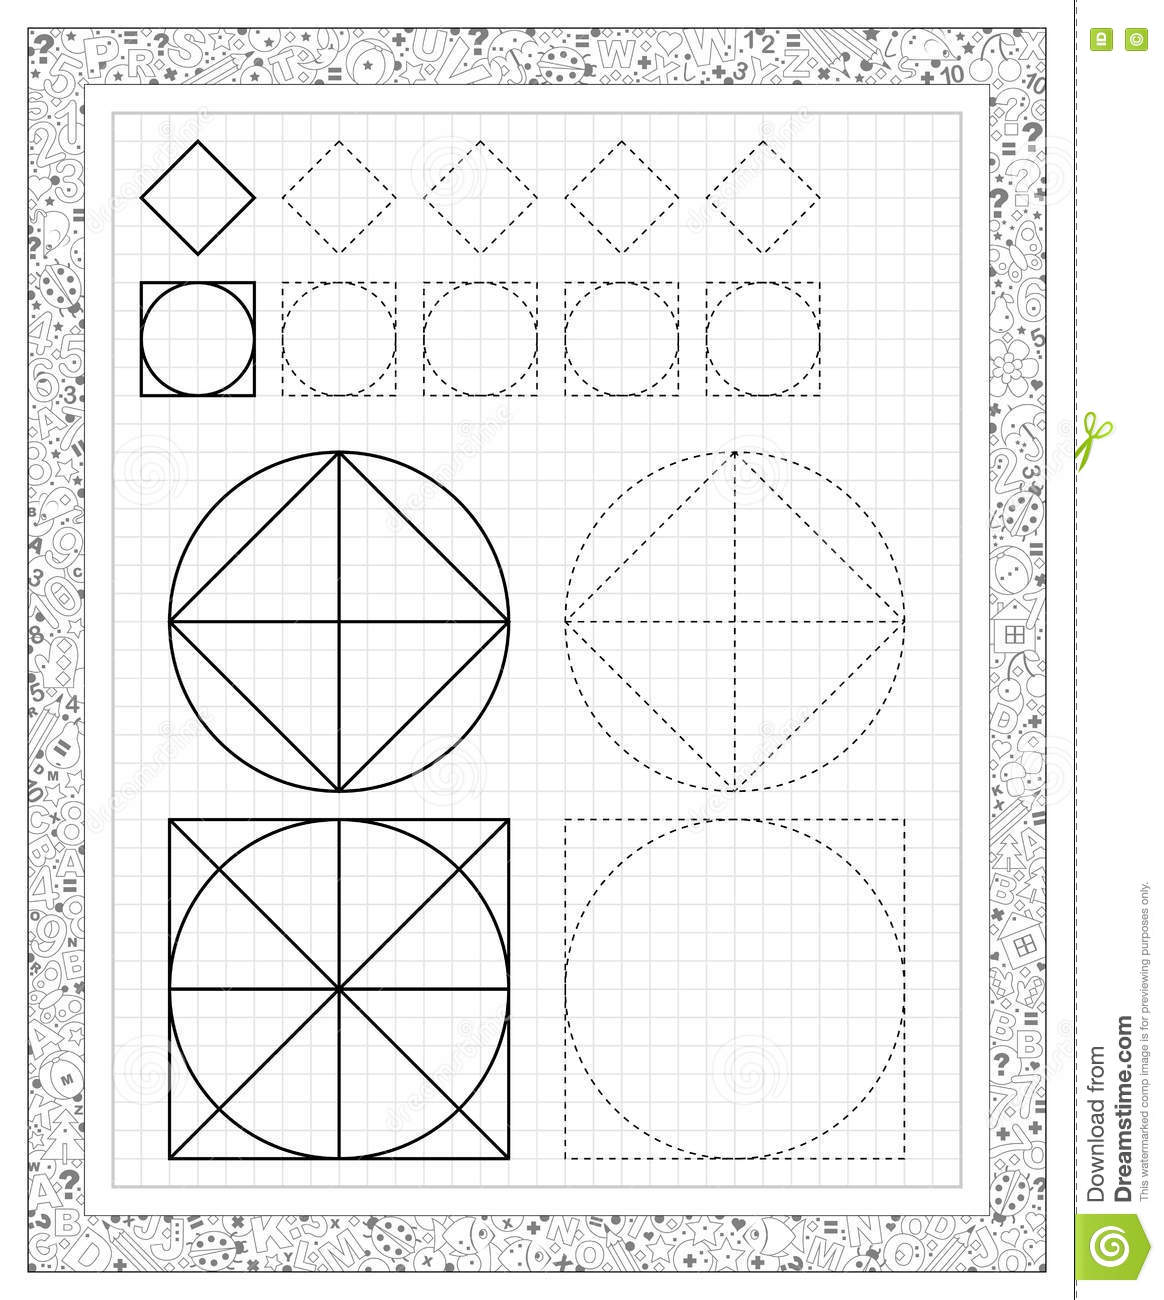 Black And White Worksheet On A Square Paper With Exercises